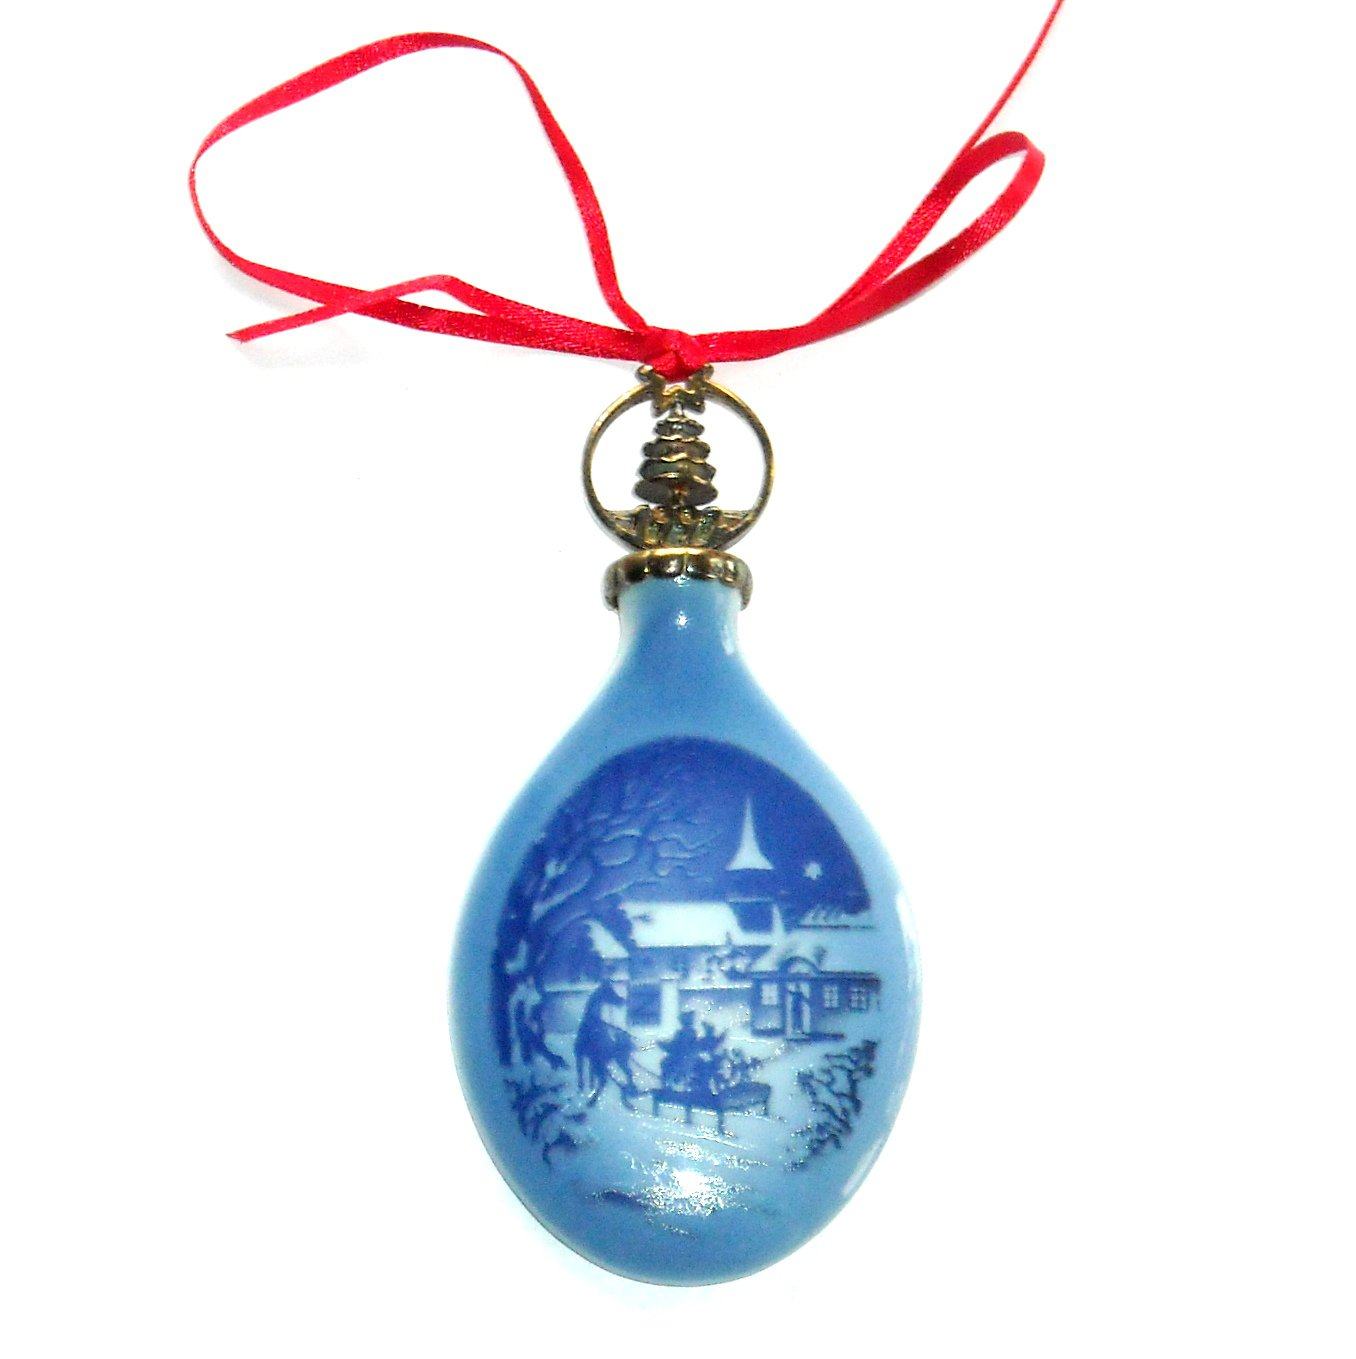 Bing & Grondahl Copenhagen Denmark 1992 Christmas Drop Ornament